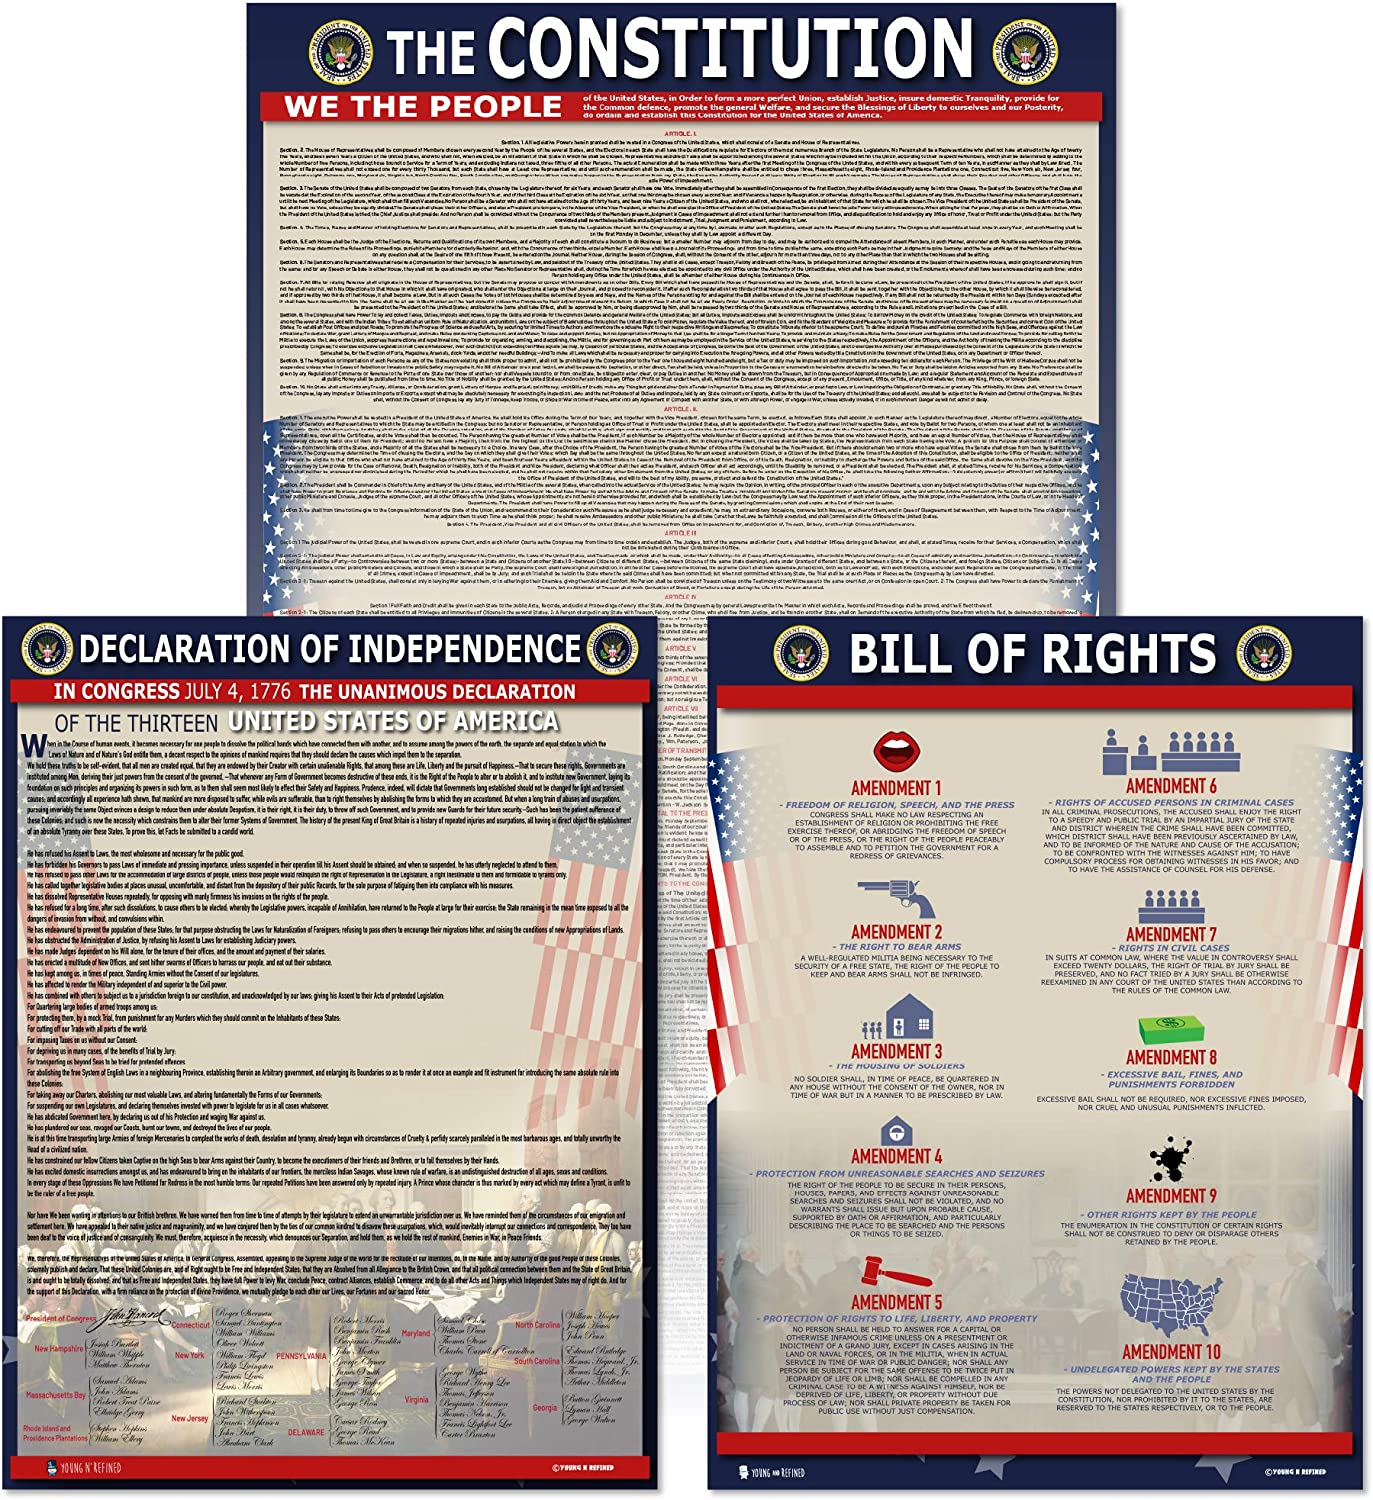 American Founding documents Laminated 3 pack: US Constitution, Declaration of Independence and Bill of Rights UPDATED FIXED Young N Refined